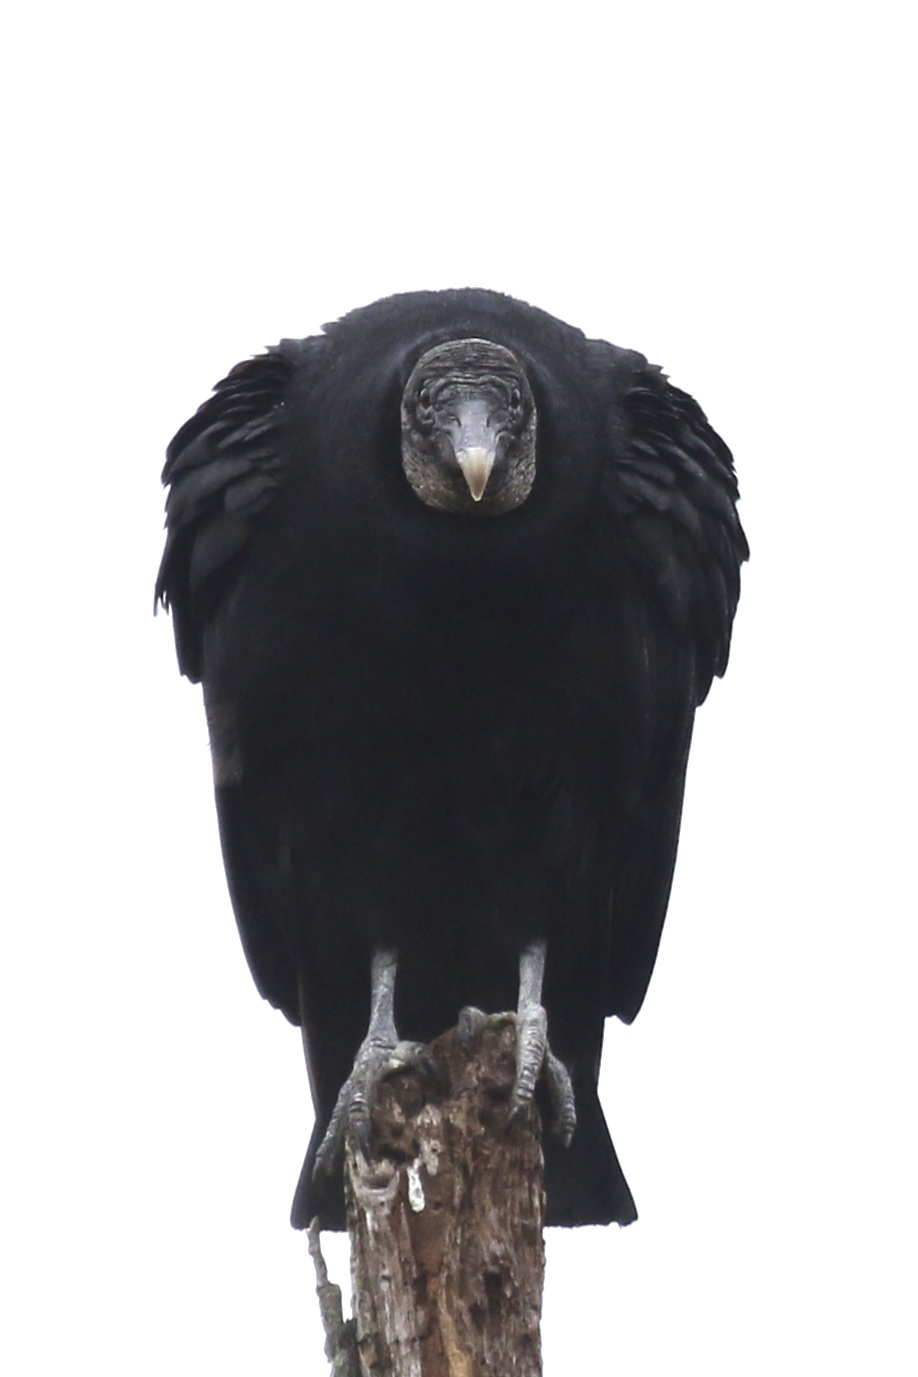 ~This is not a pretty bird, but it is pretty cool. Black Vulture in Blooming Grove, NY 1/10/16.~